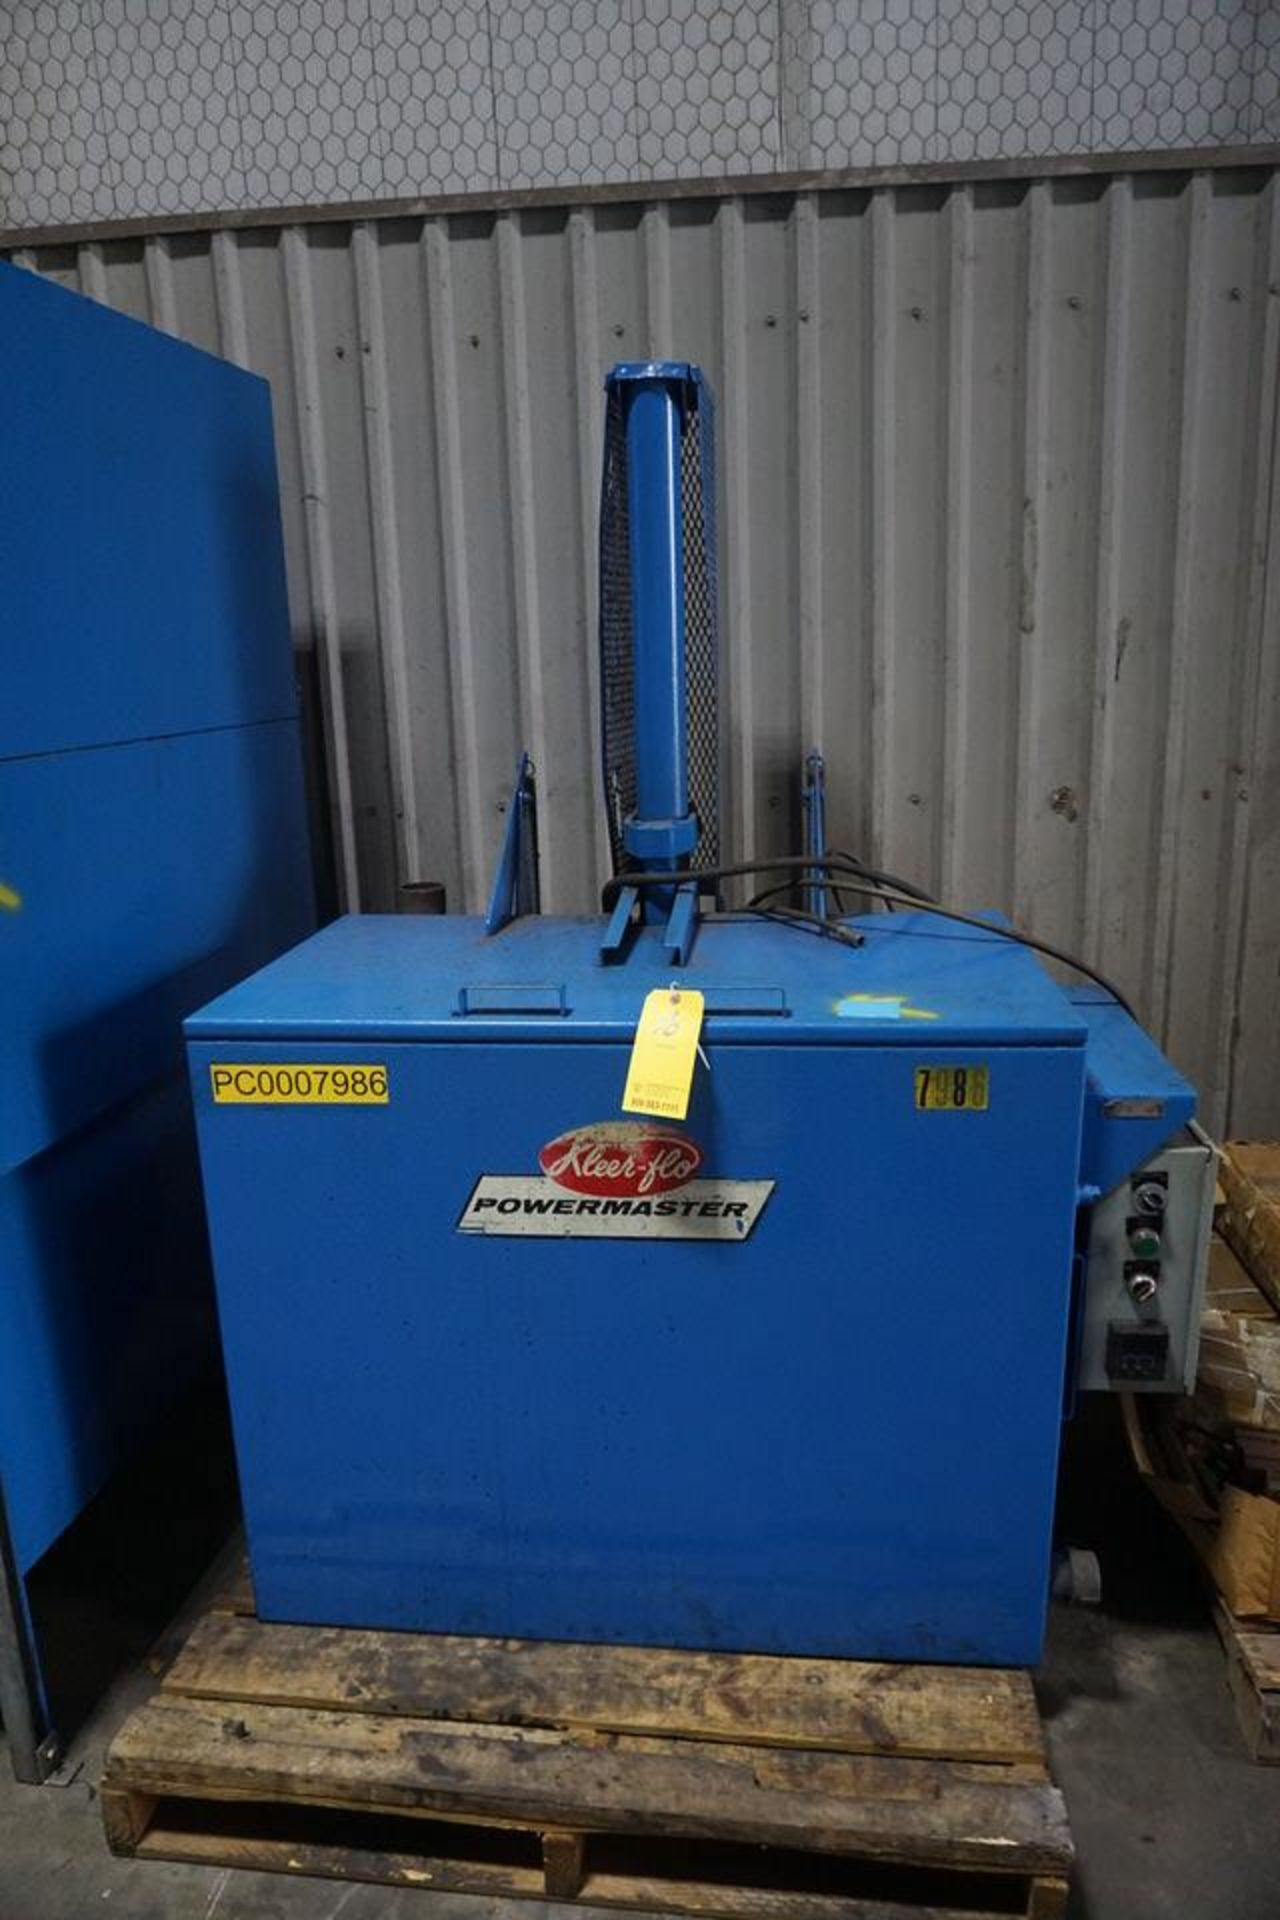 """KLEEN FLOW PARTS WASHER, 45"""" X 24"""" X 3' COMPARTMENT (ASST#: PC0007986)"""